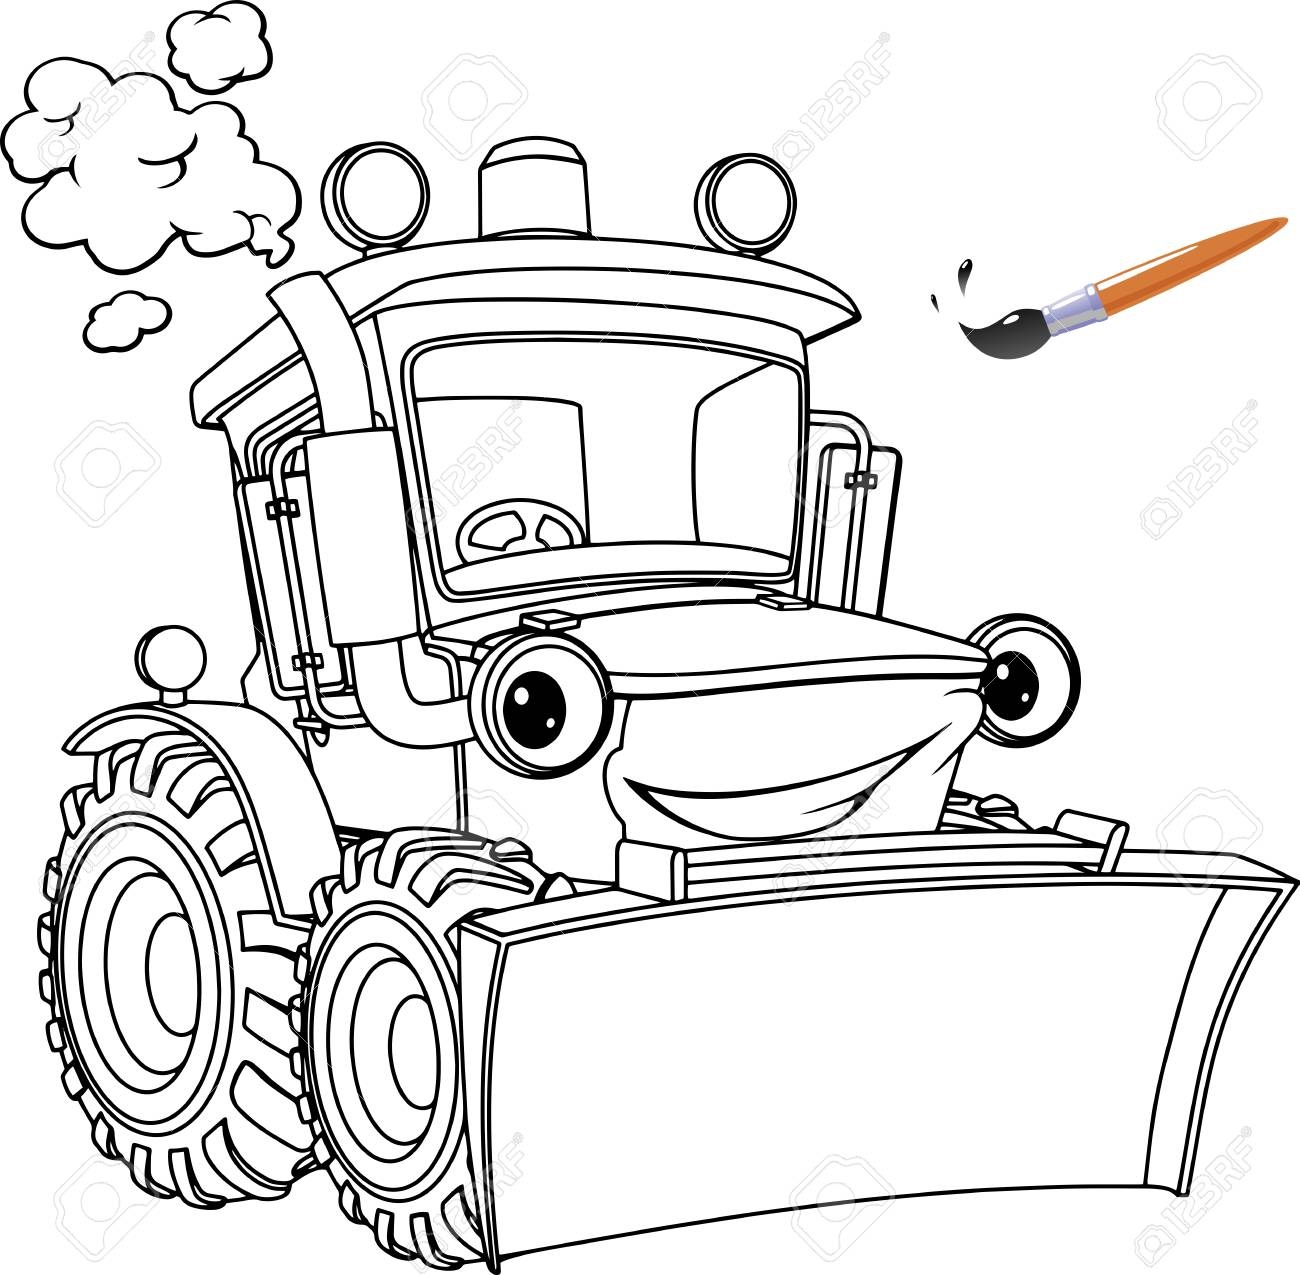 Funny Tractor Bulldozer Coloring Pages Coloring Book Design For